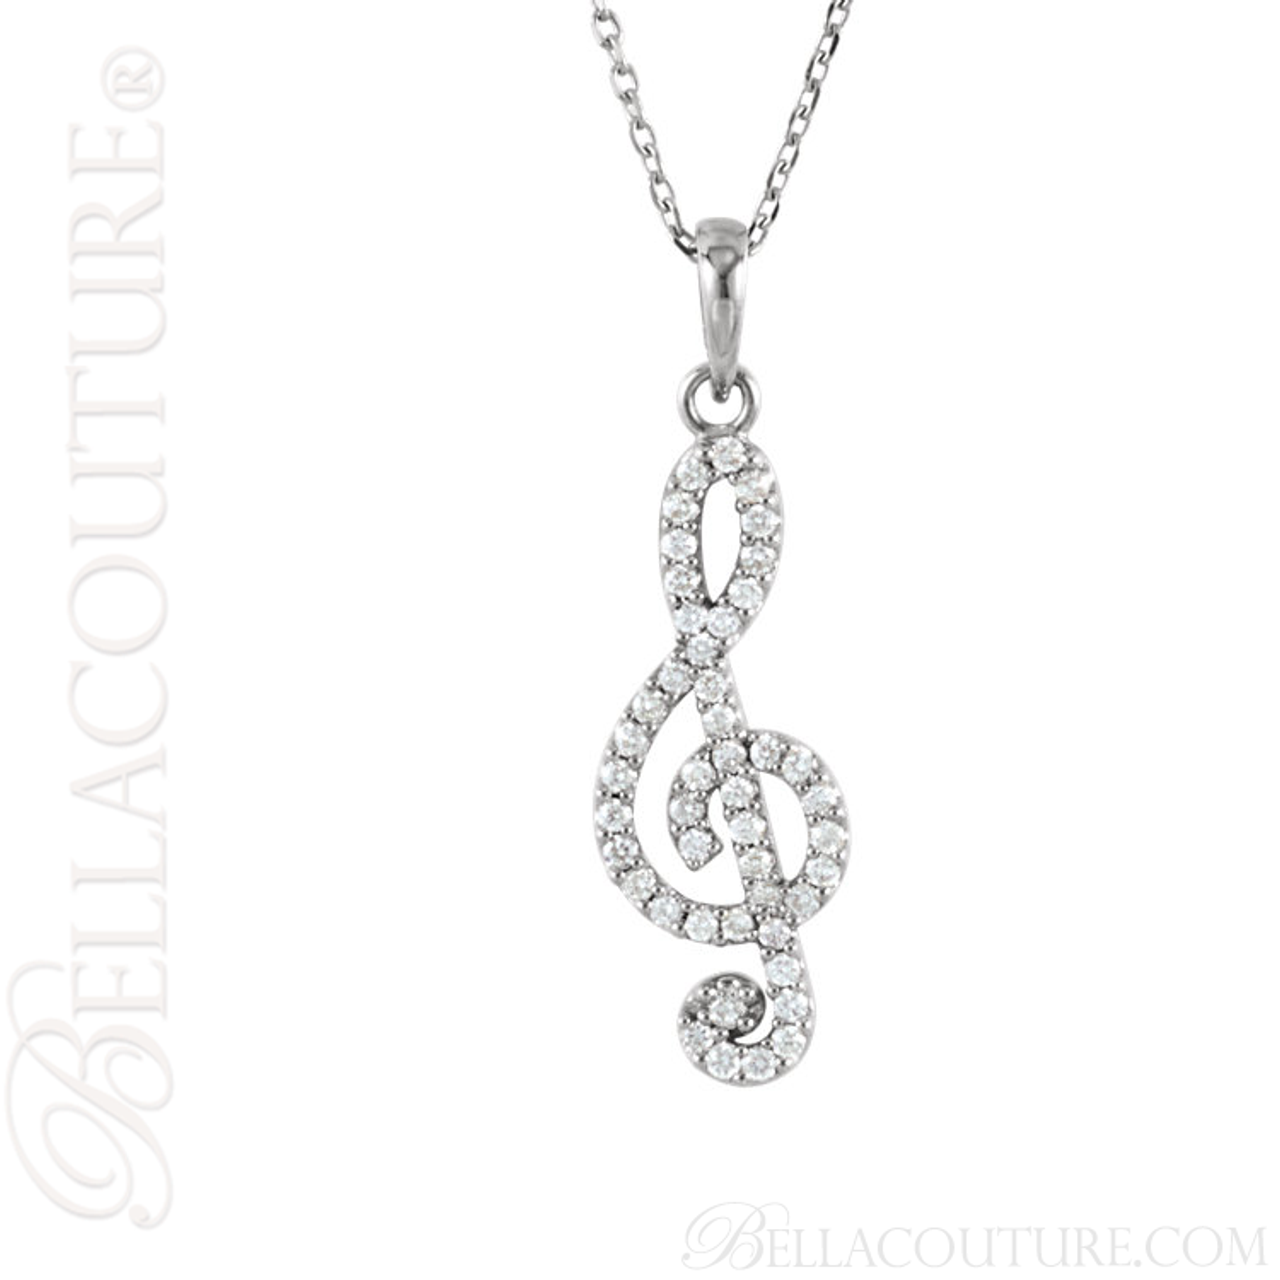 New bella couture fine petite treble clef diamond 14k white gold new bella couture fine petite treble clef diamond 14k white gold pendant necklace mozeypictures